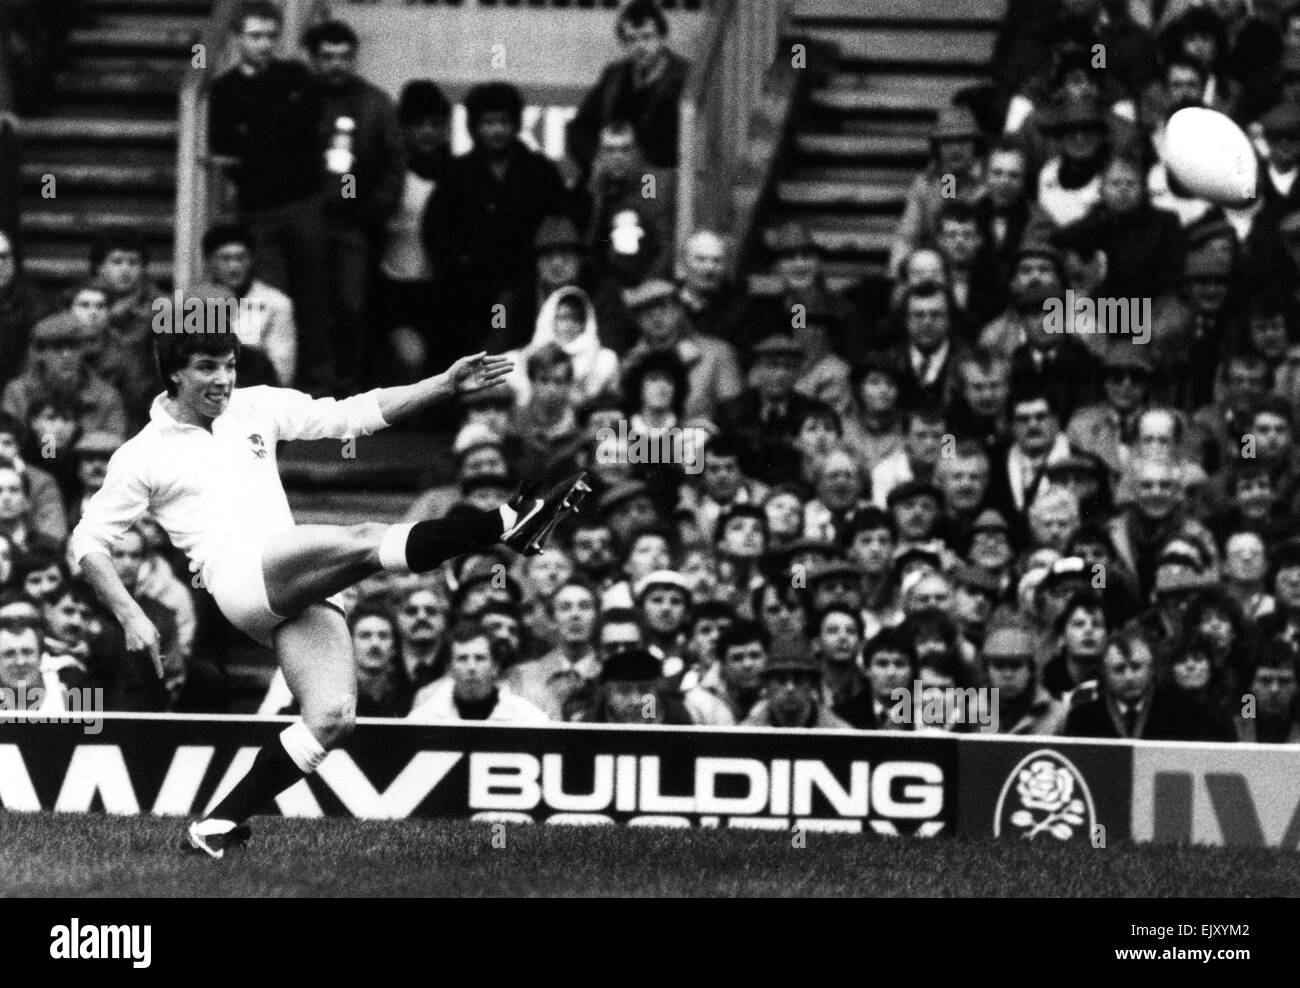 England 21 v Wales 18 at Twickenham. Rob Andrew kicks England to victory scoring all of the points with his boot. - Stock Image